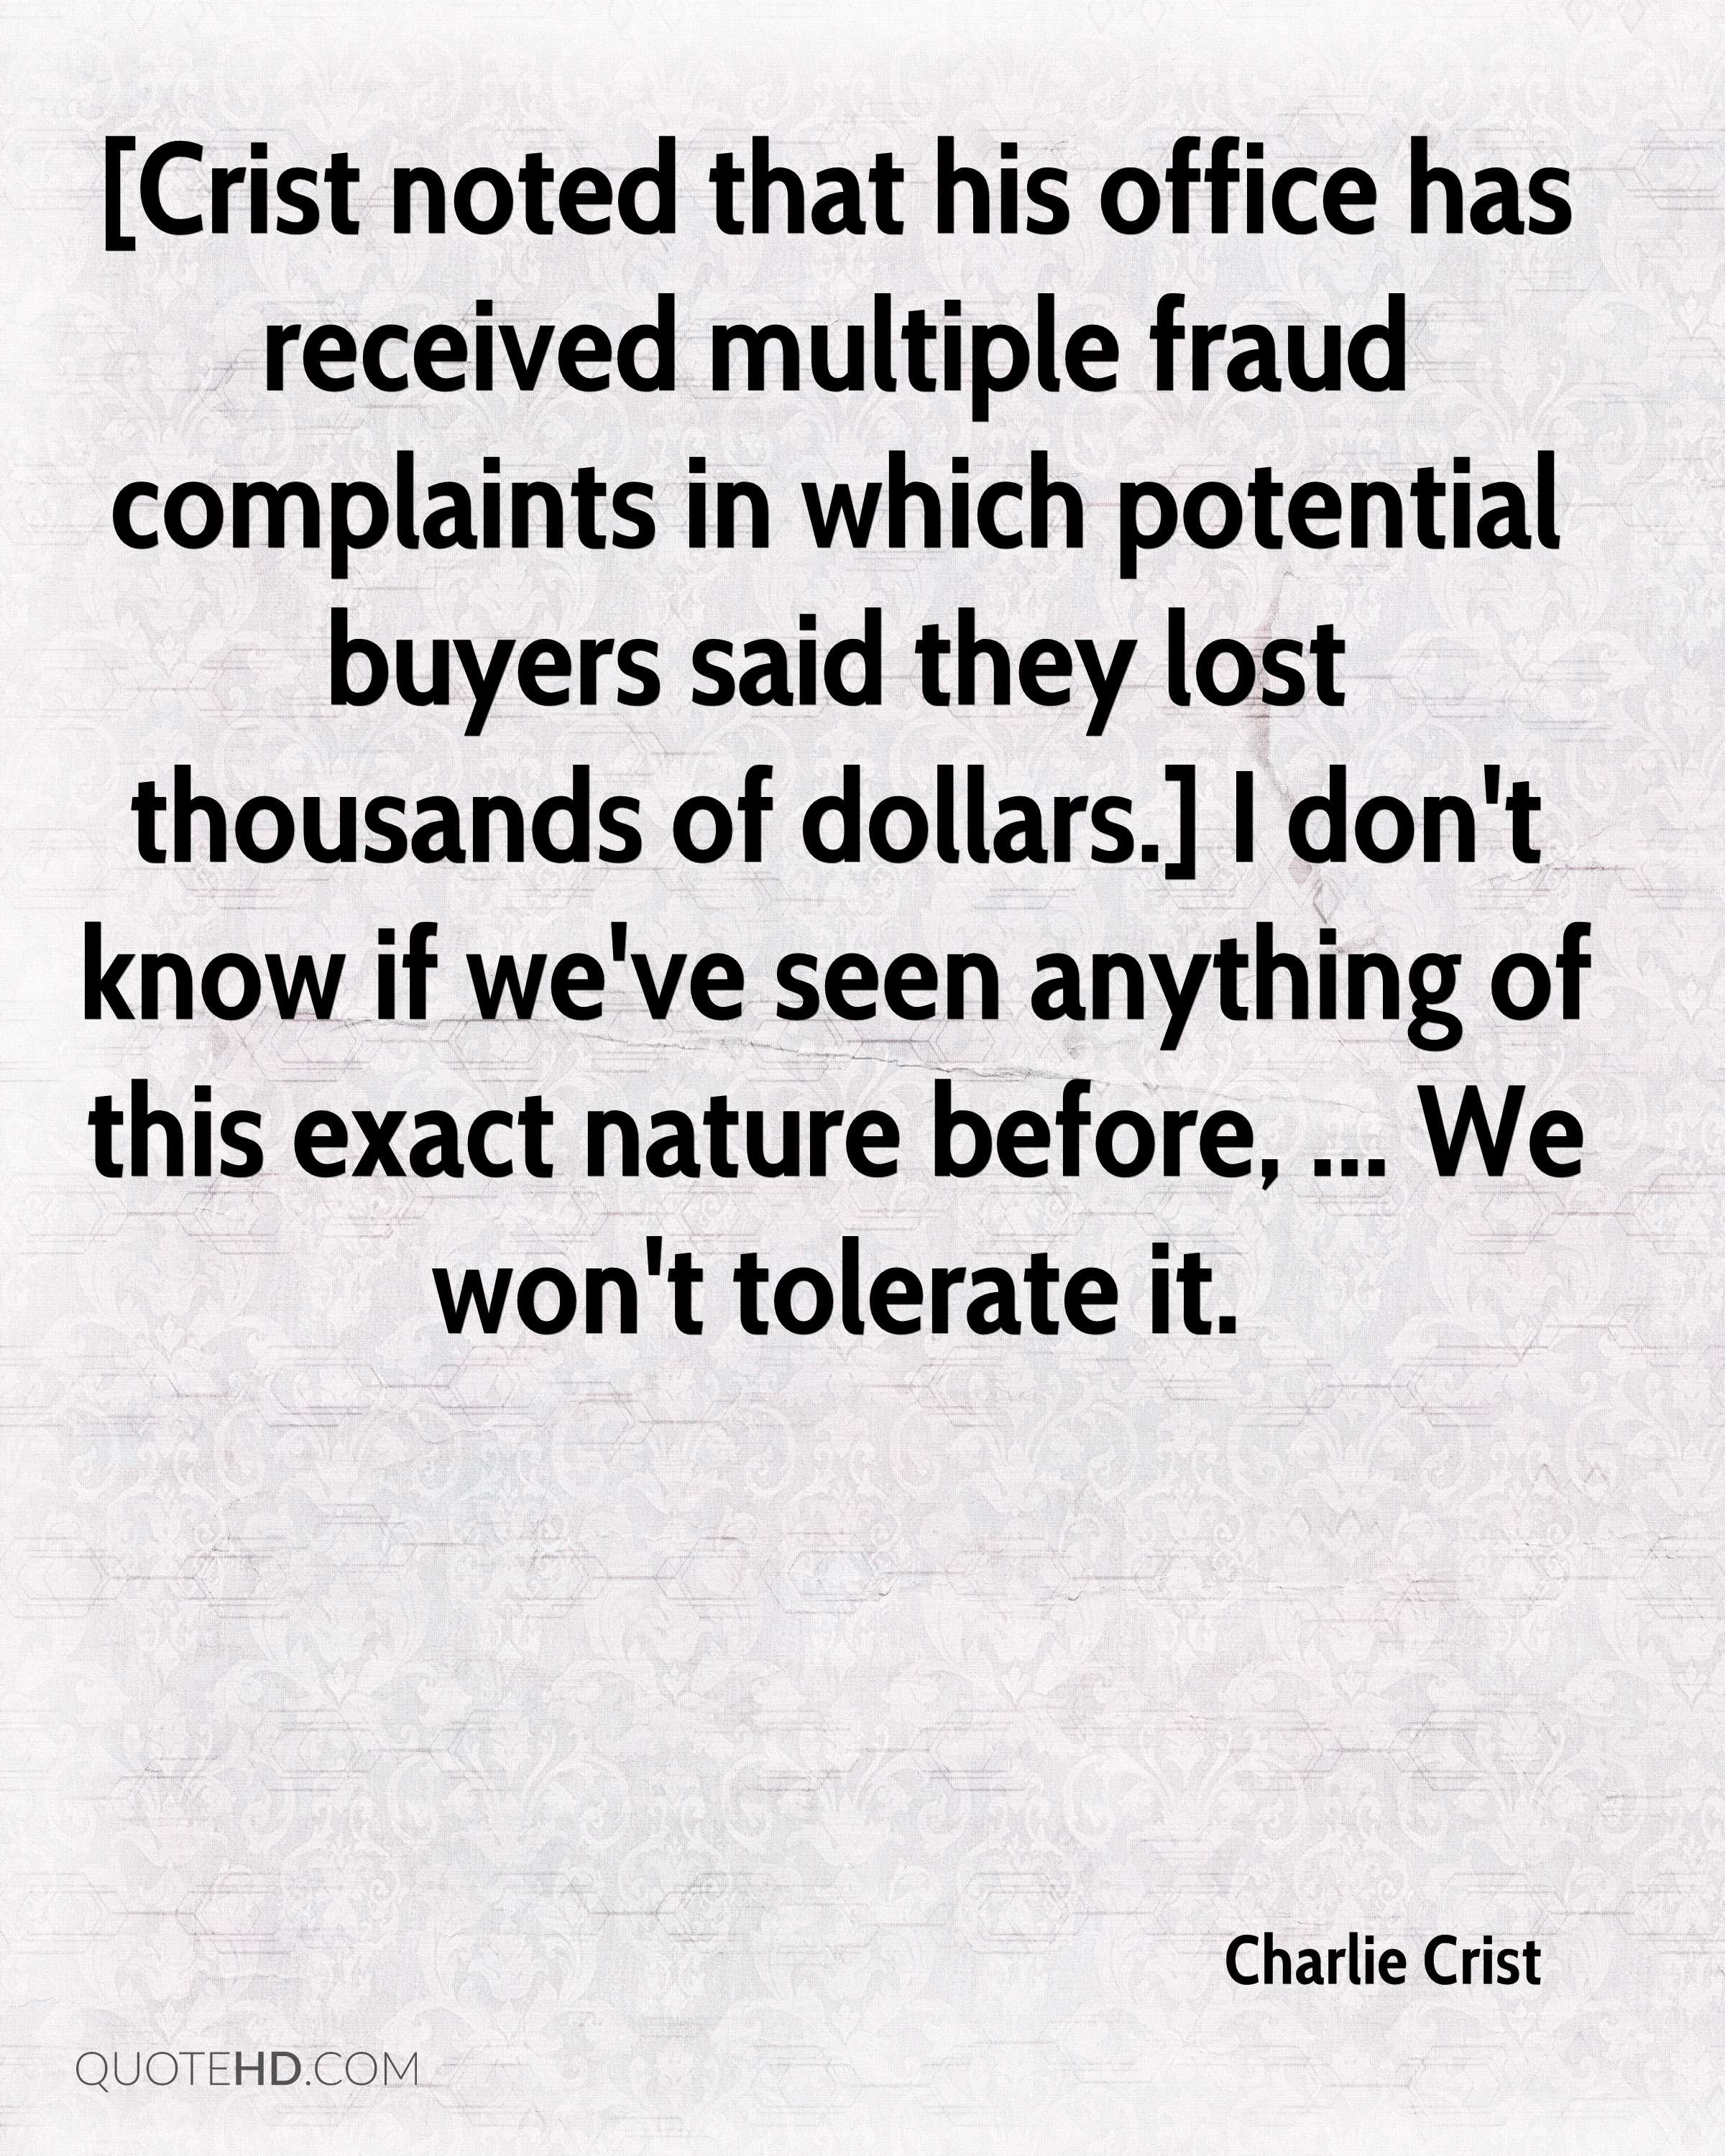 [Crist noted that his office has received multiple fraud complaints in which potential buyers said they lost thousands of dollars.] I don't know if we've seen anything of this exact nature before, ... We won't tolerate it.